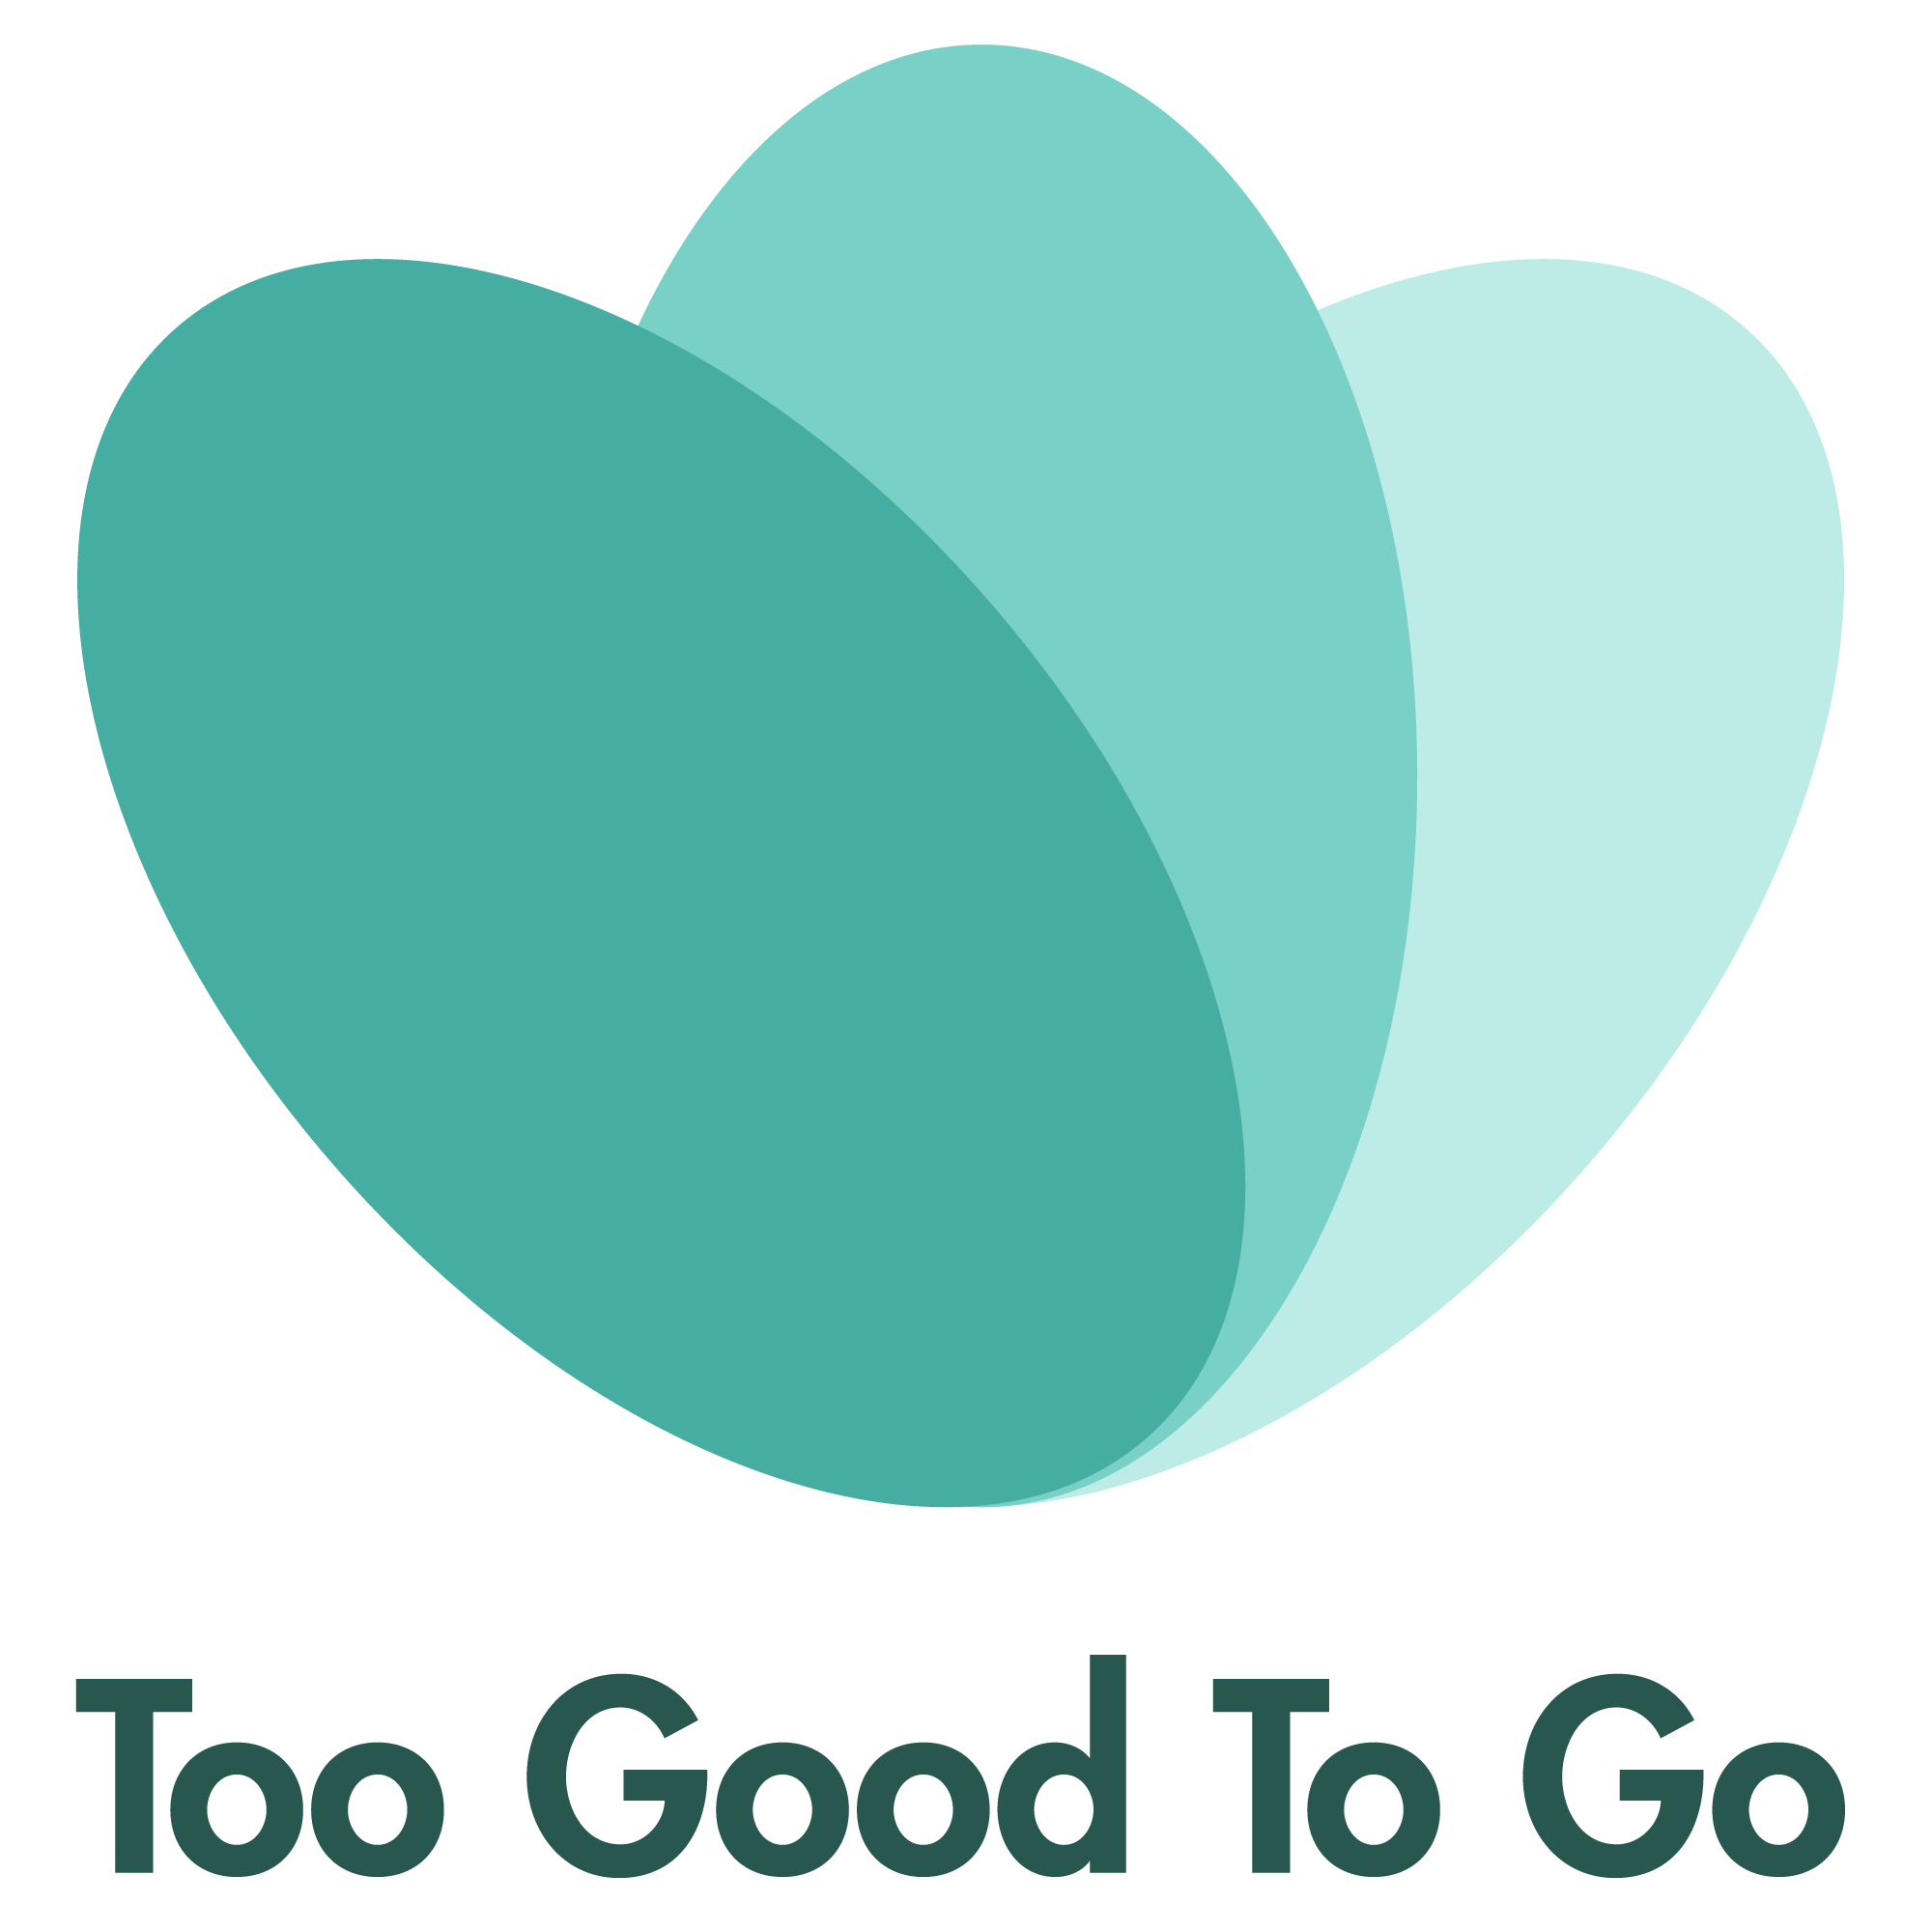 Too Good To Go's logo